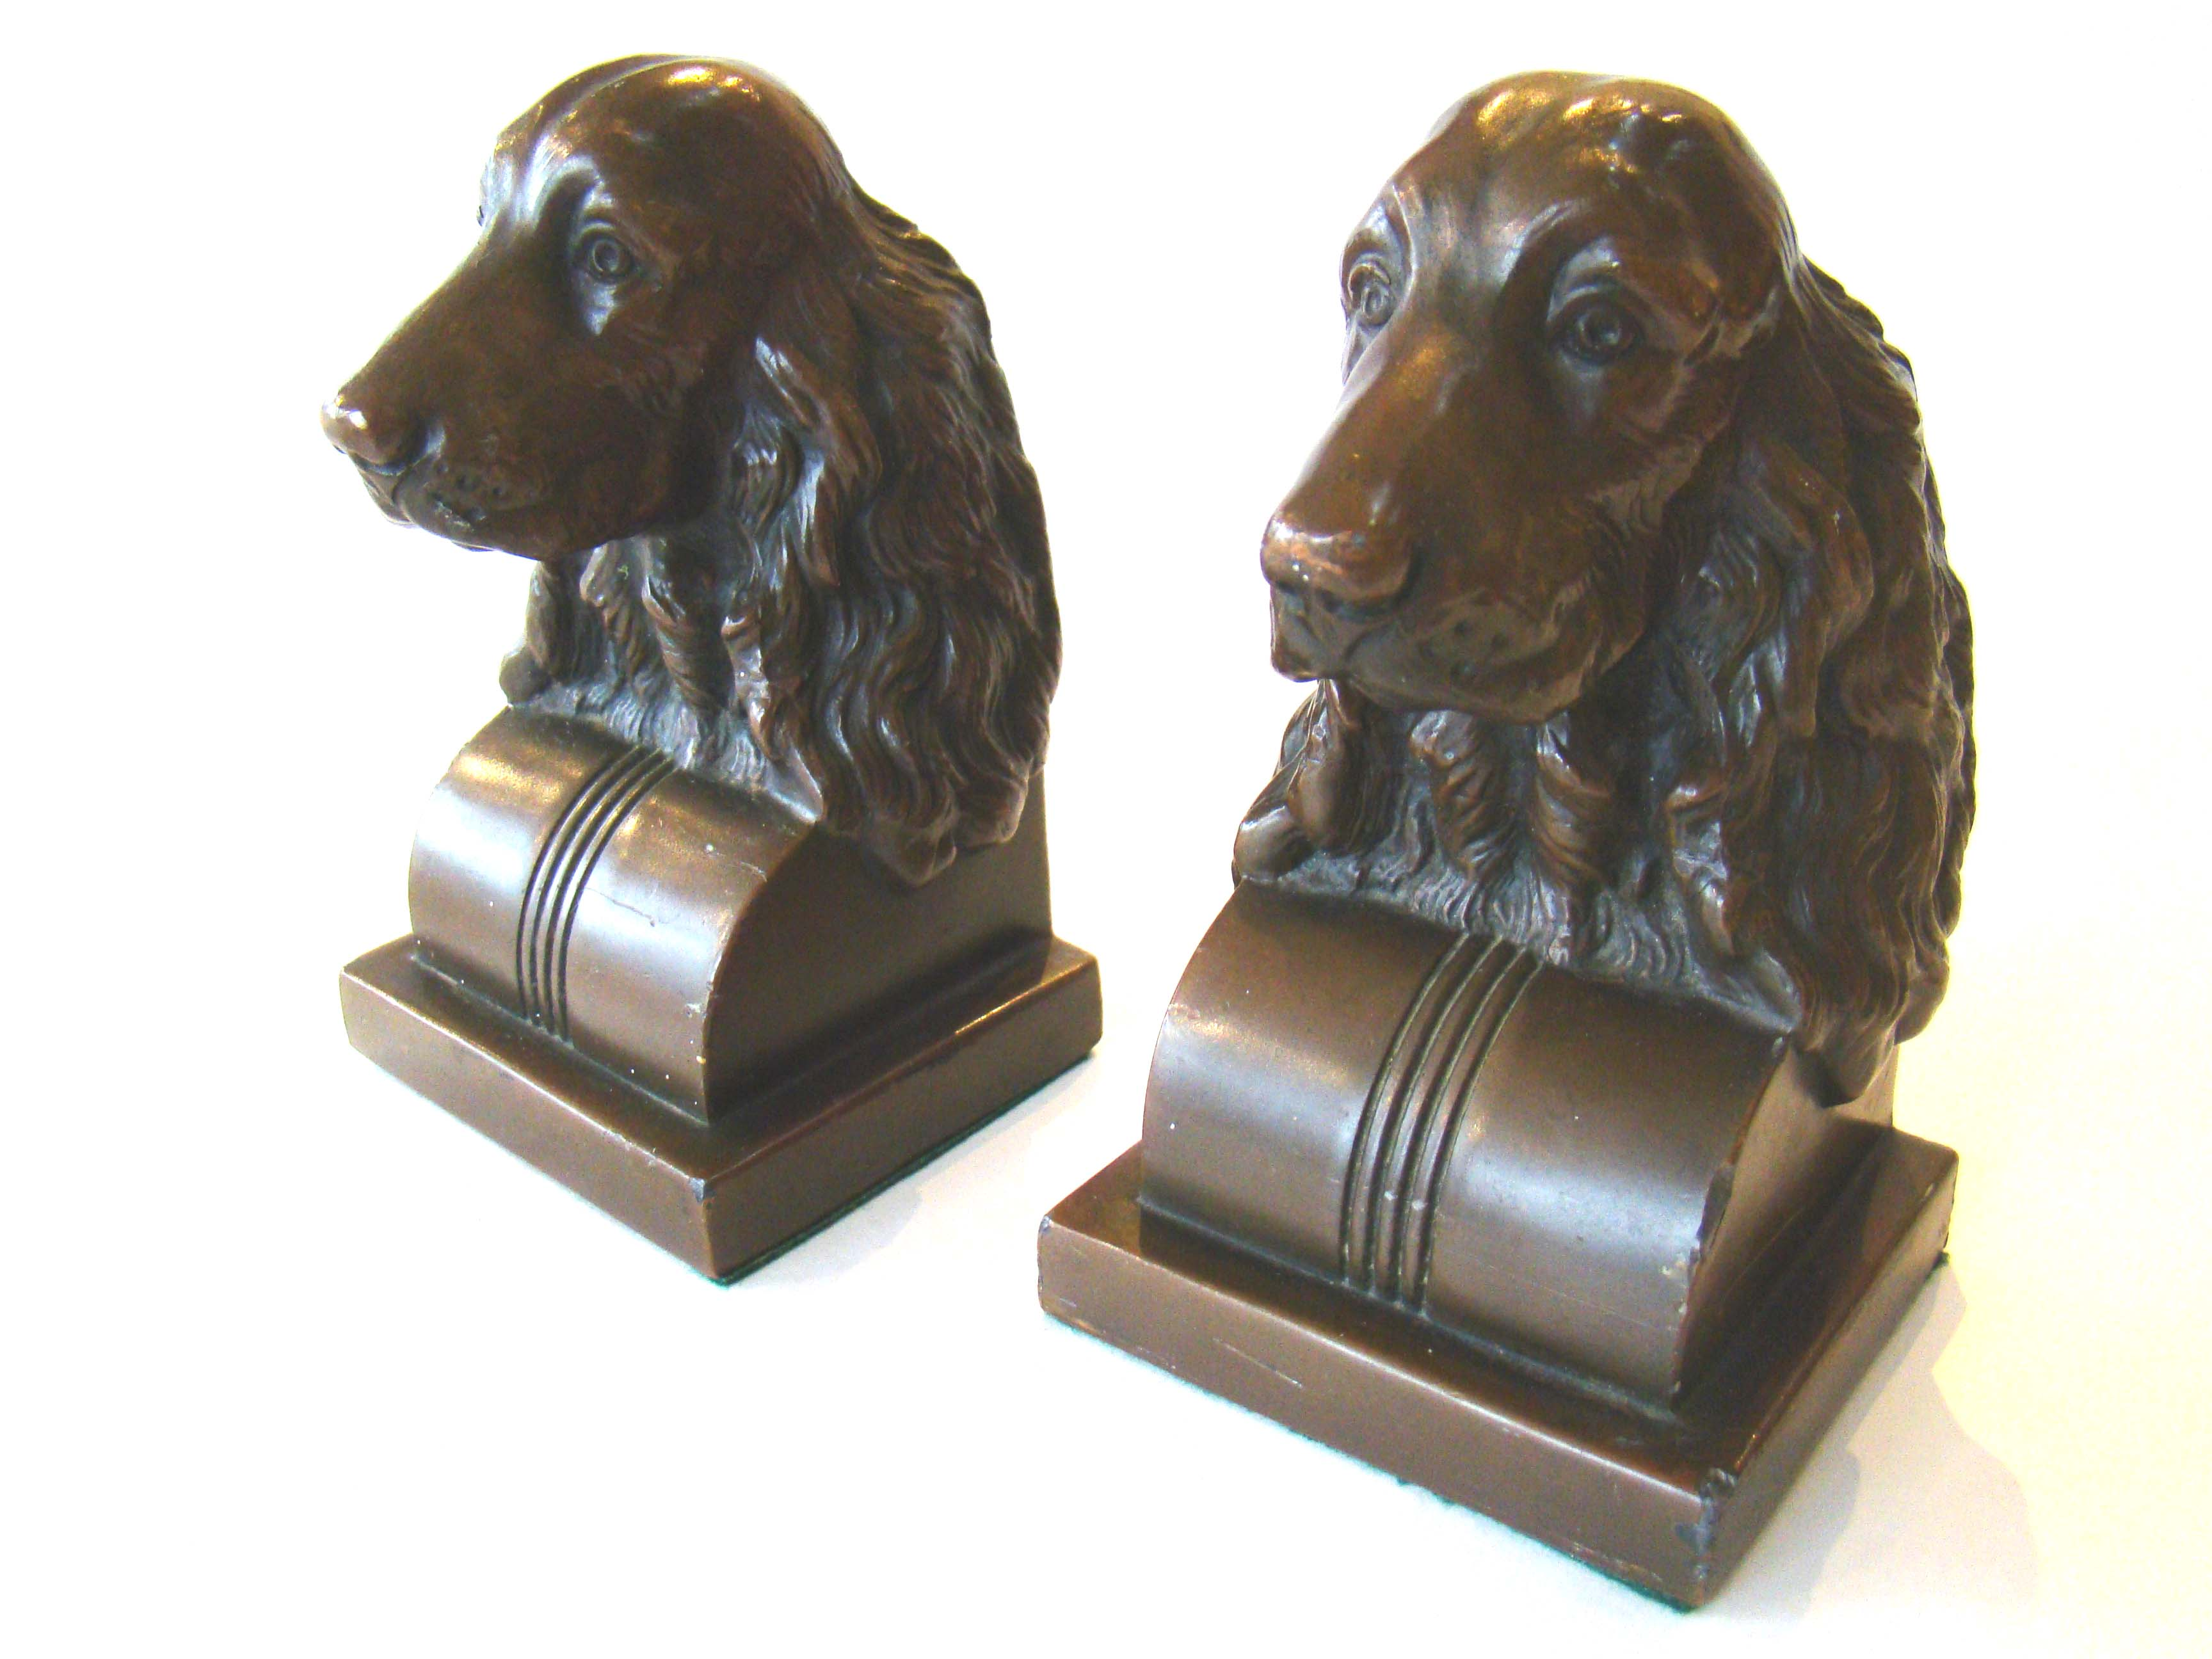 click to view larger image of A pair of vintage Spaniel bookends by Jennings Brothers circa 1935